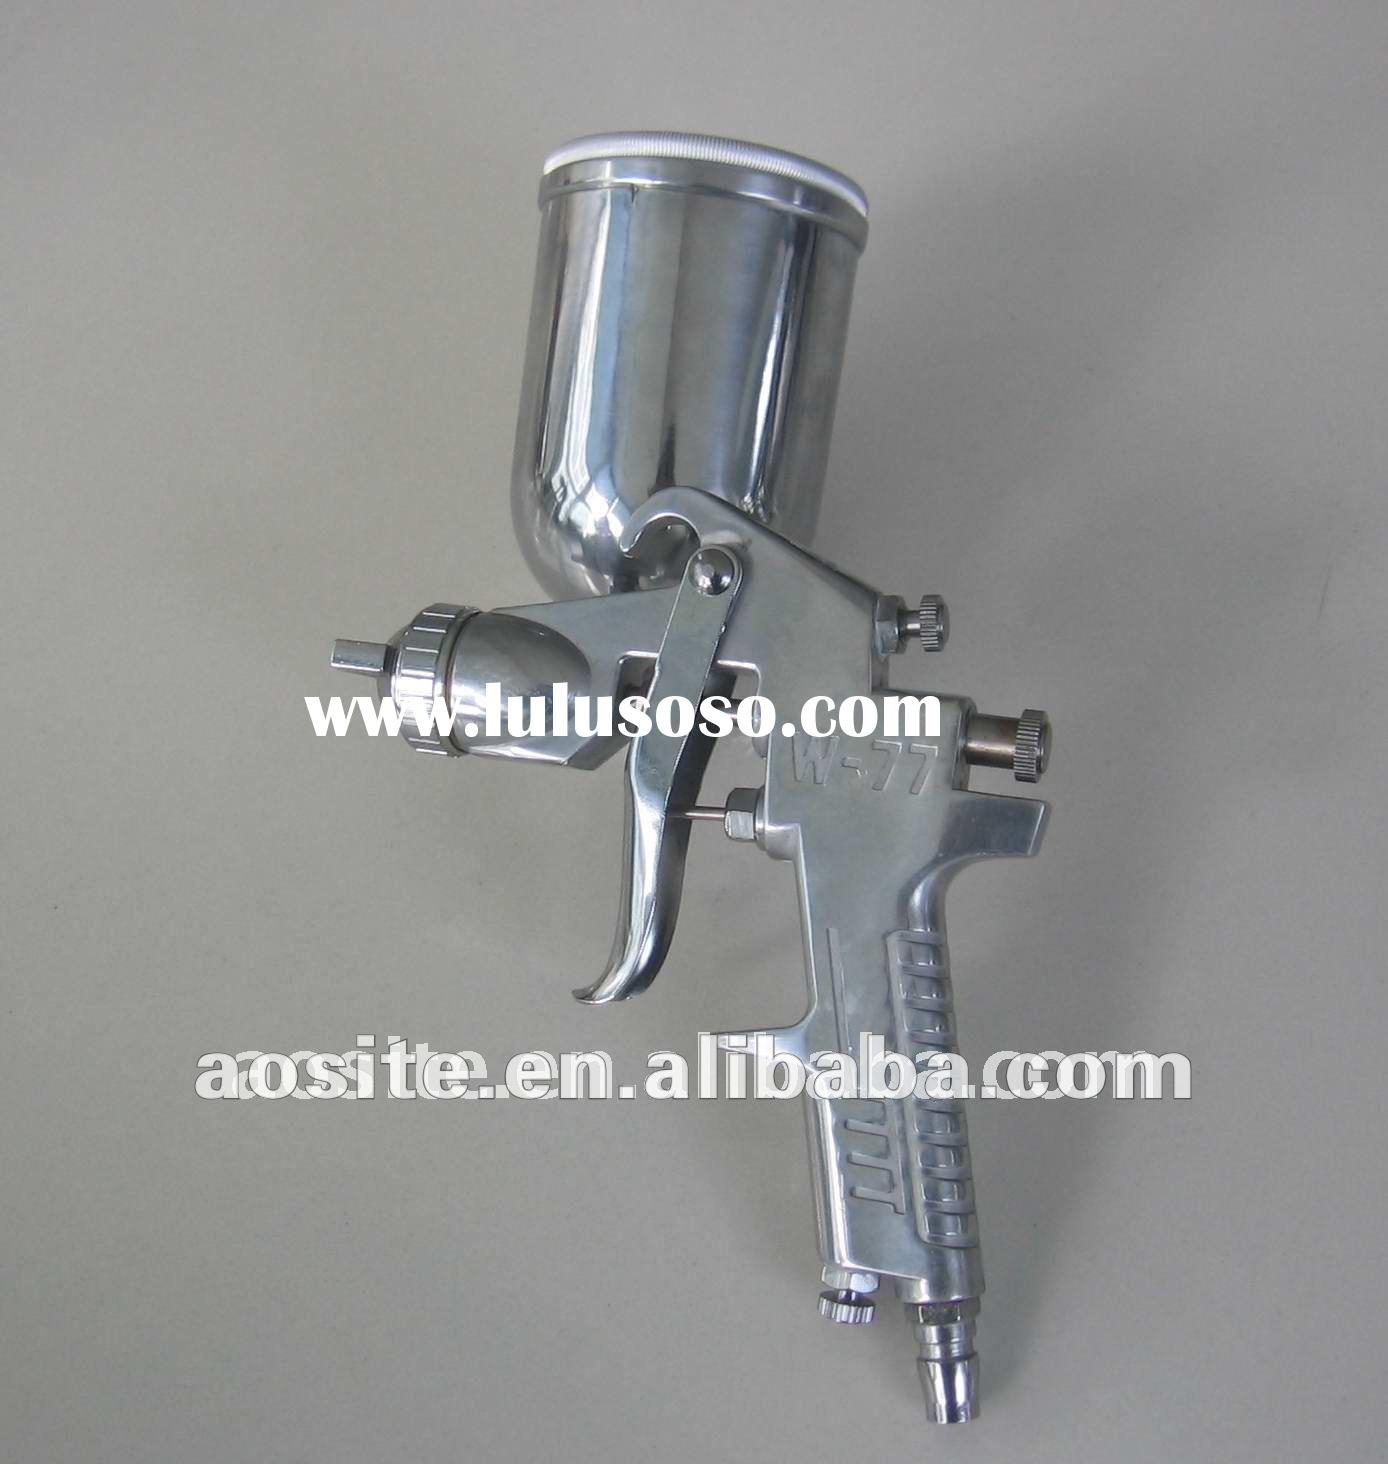 Chemical Sata Spray Gun Double Nozzle